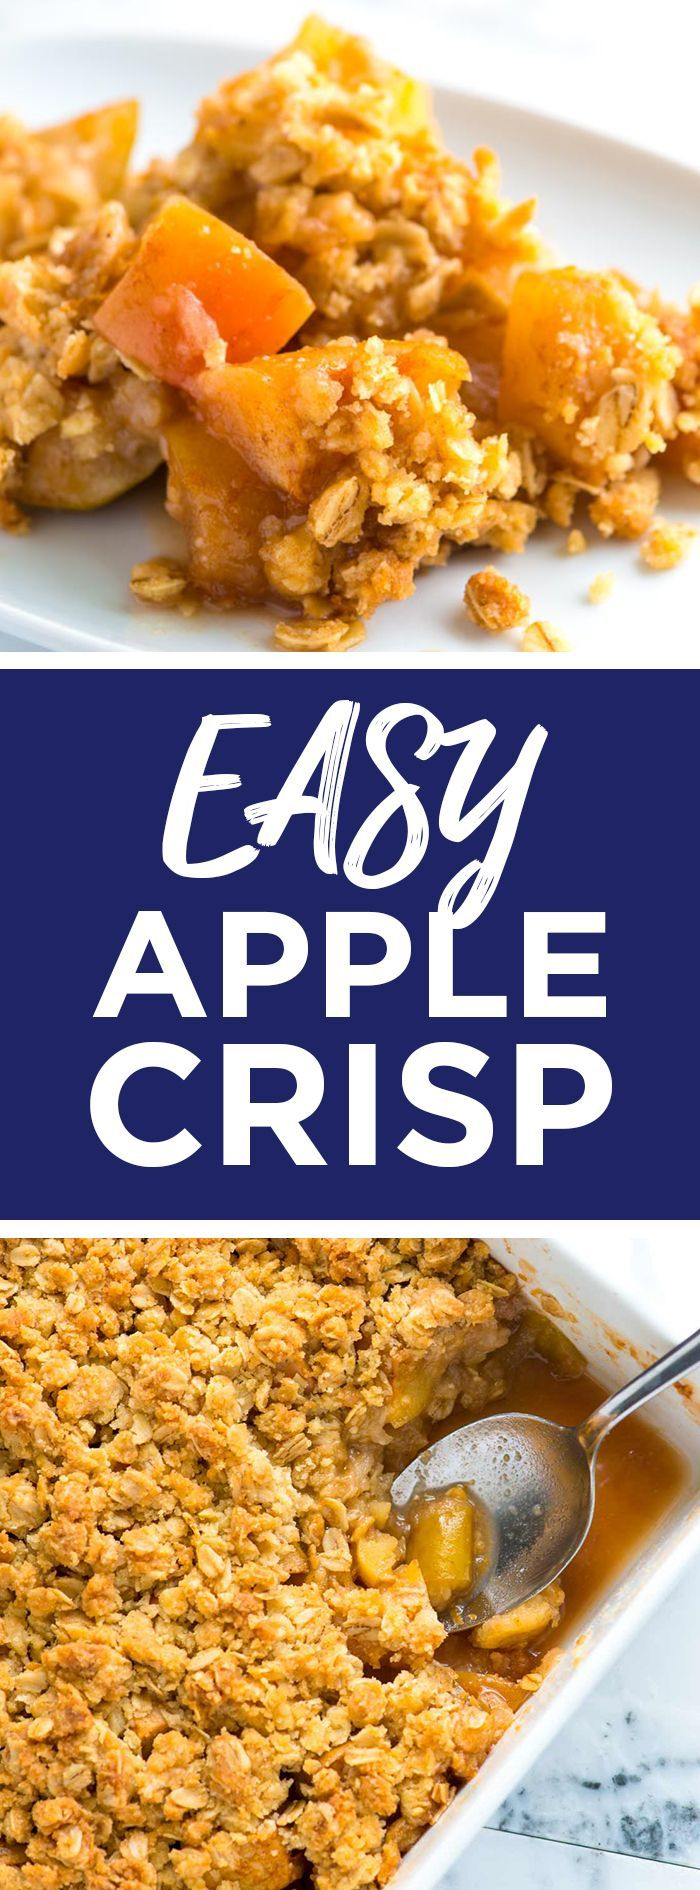 Easy Apple Crisp Recipe with Oats -- I love this apple crisp with oats, sweet tender apples and a crisp and crunchy topping made with flour, oats, brown sugar, butter, and cinnamon. It's amazing warm and cold. I've even had it for breakfast! #dessert #dessertrecipes #entertaining #apples #homemade